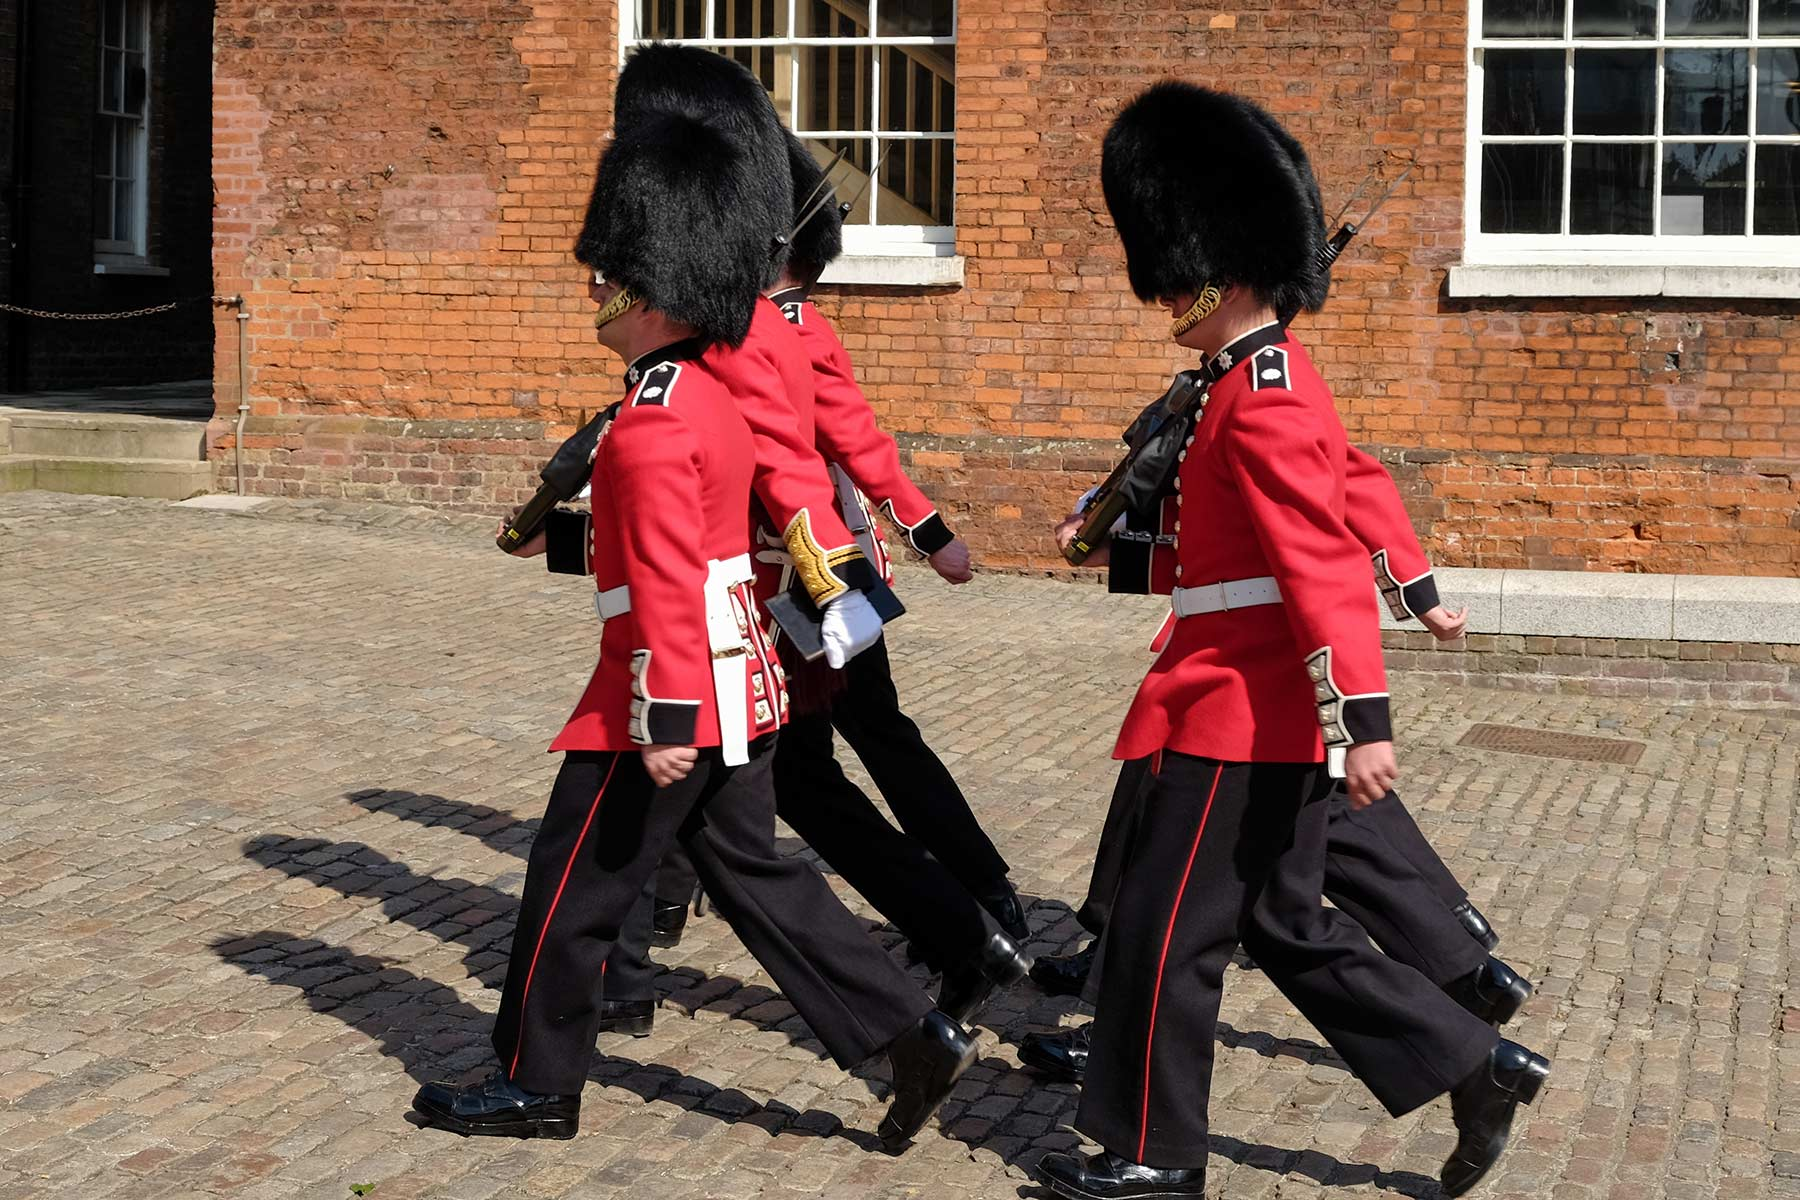 Queen's Guards im Tower of London in London, England